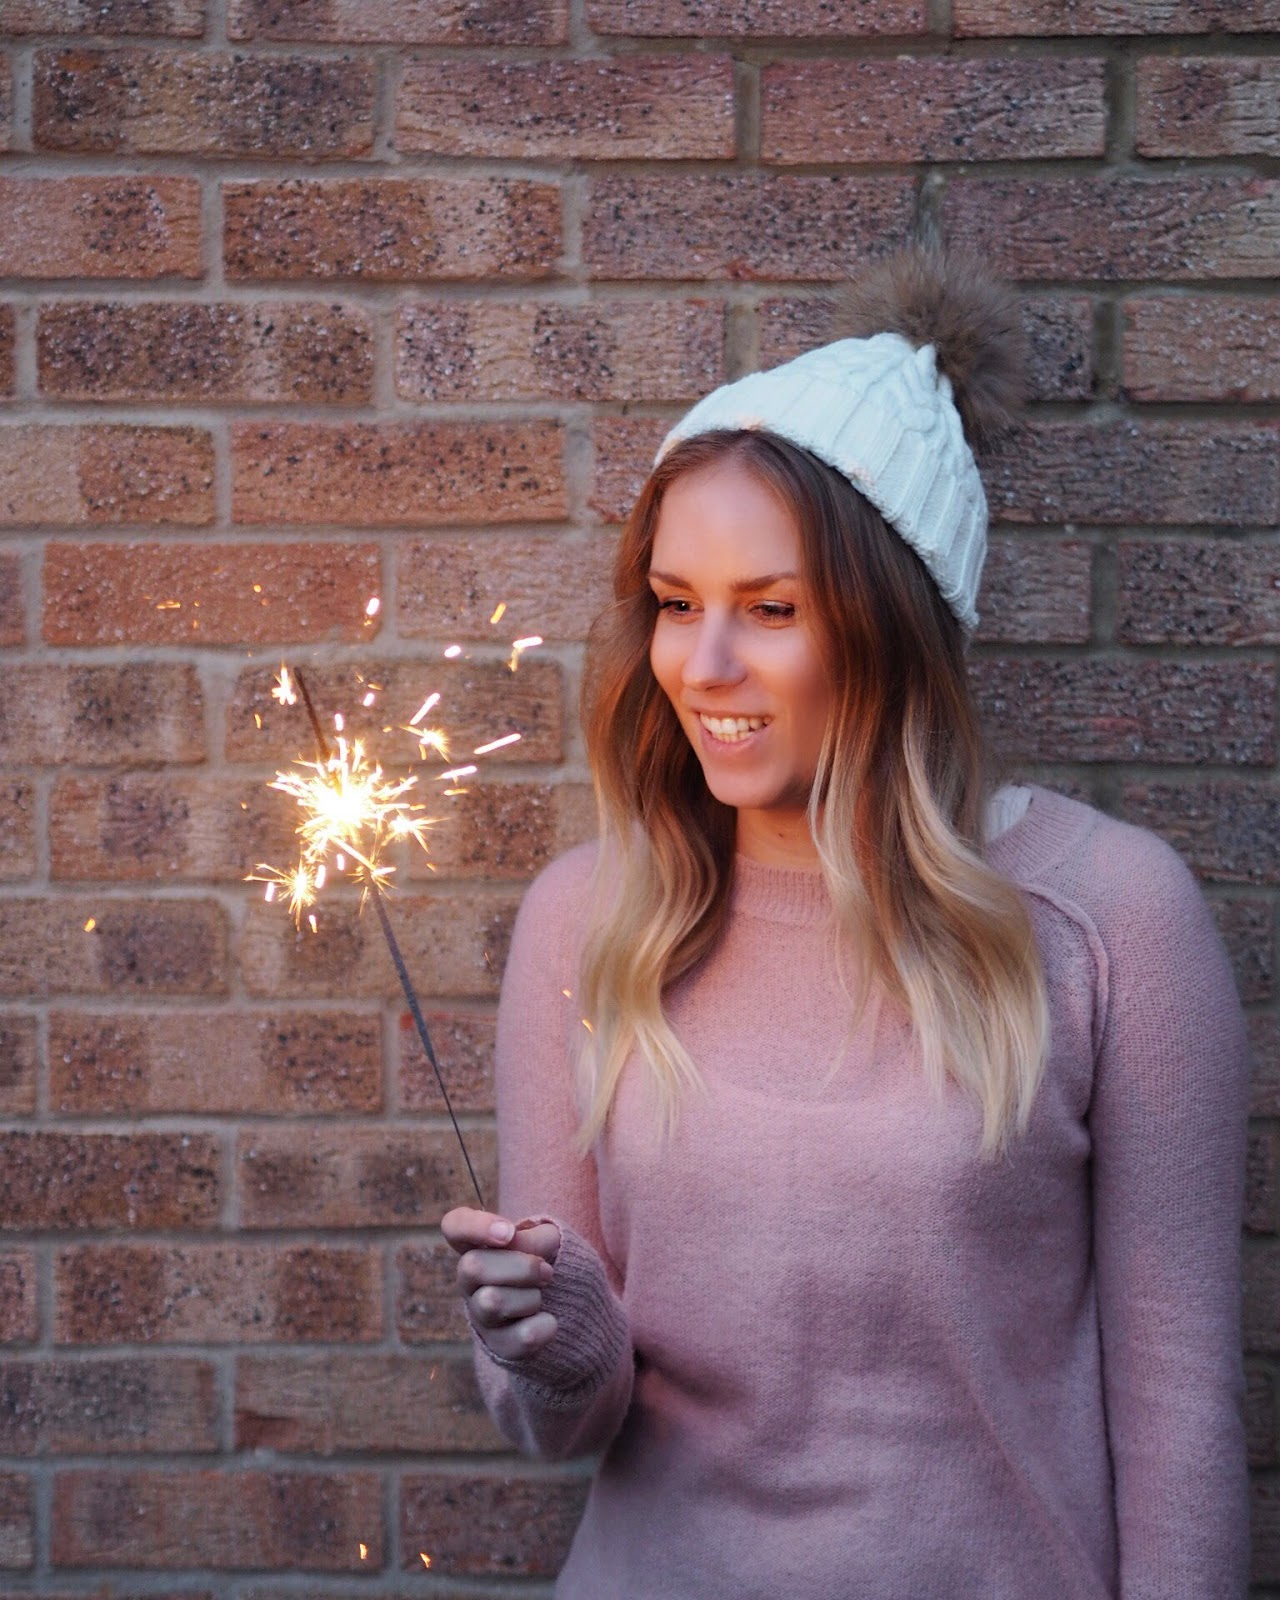 Lifestyle | Making 2018 My Best Year Yet Rachel Emily in a Bobble hat with Sparkler Smiling